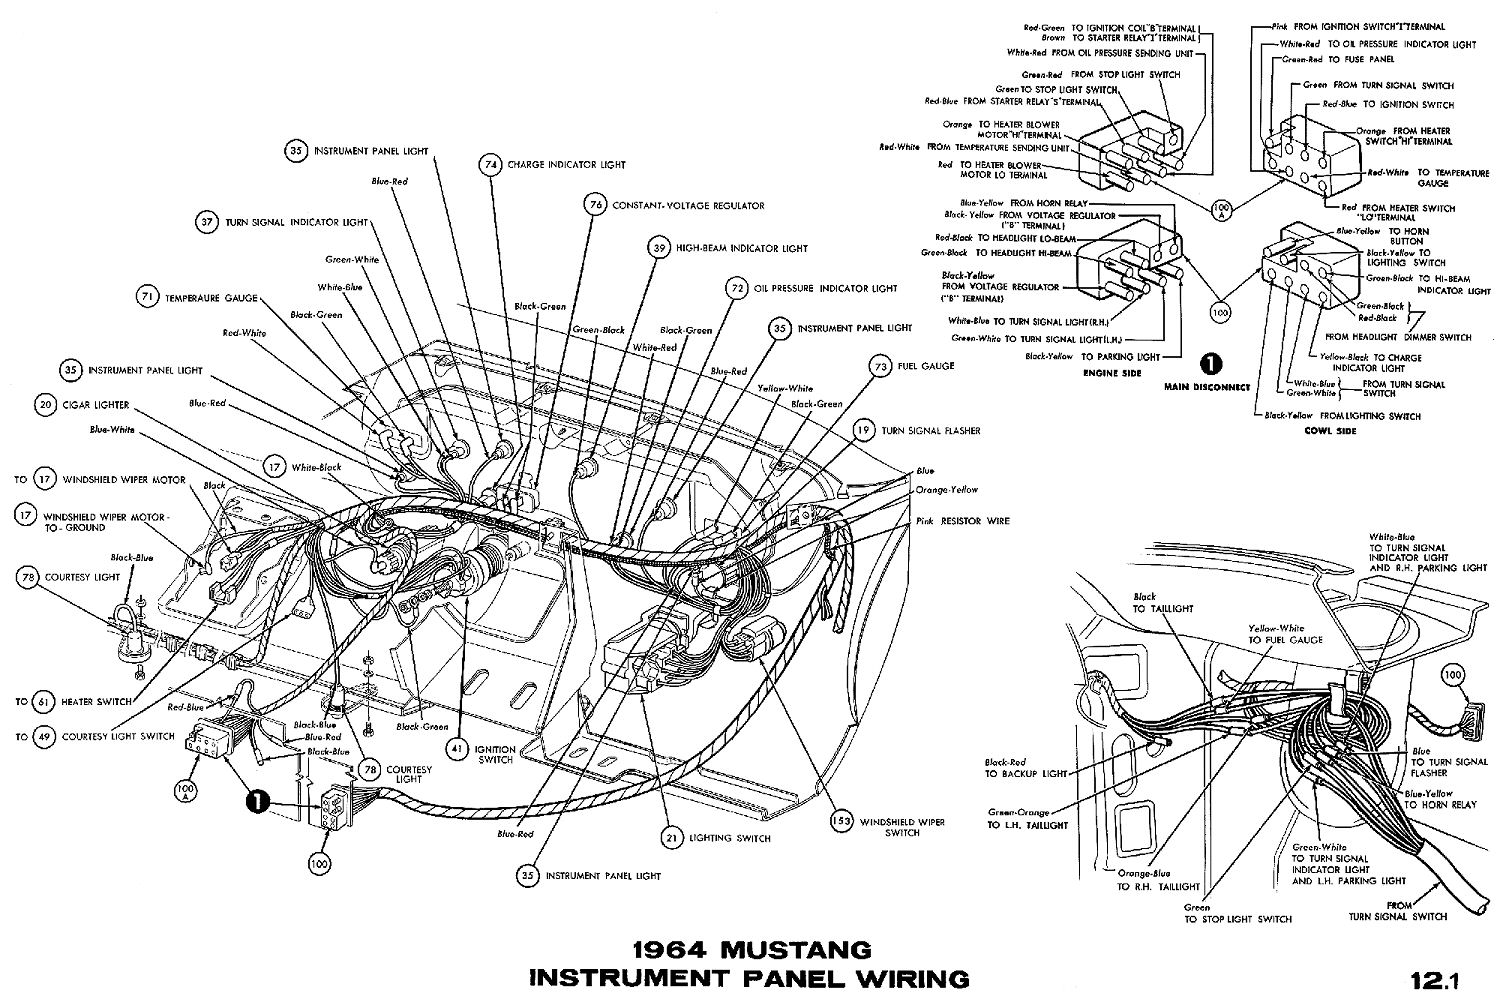 1965 Pontiac Dash Wiring Diagram Free Picture Libraries 65 Gto Schematic 1967 Download Library1964 Mustang Diagrams Average Joe Restoration Rh